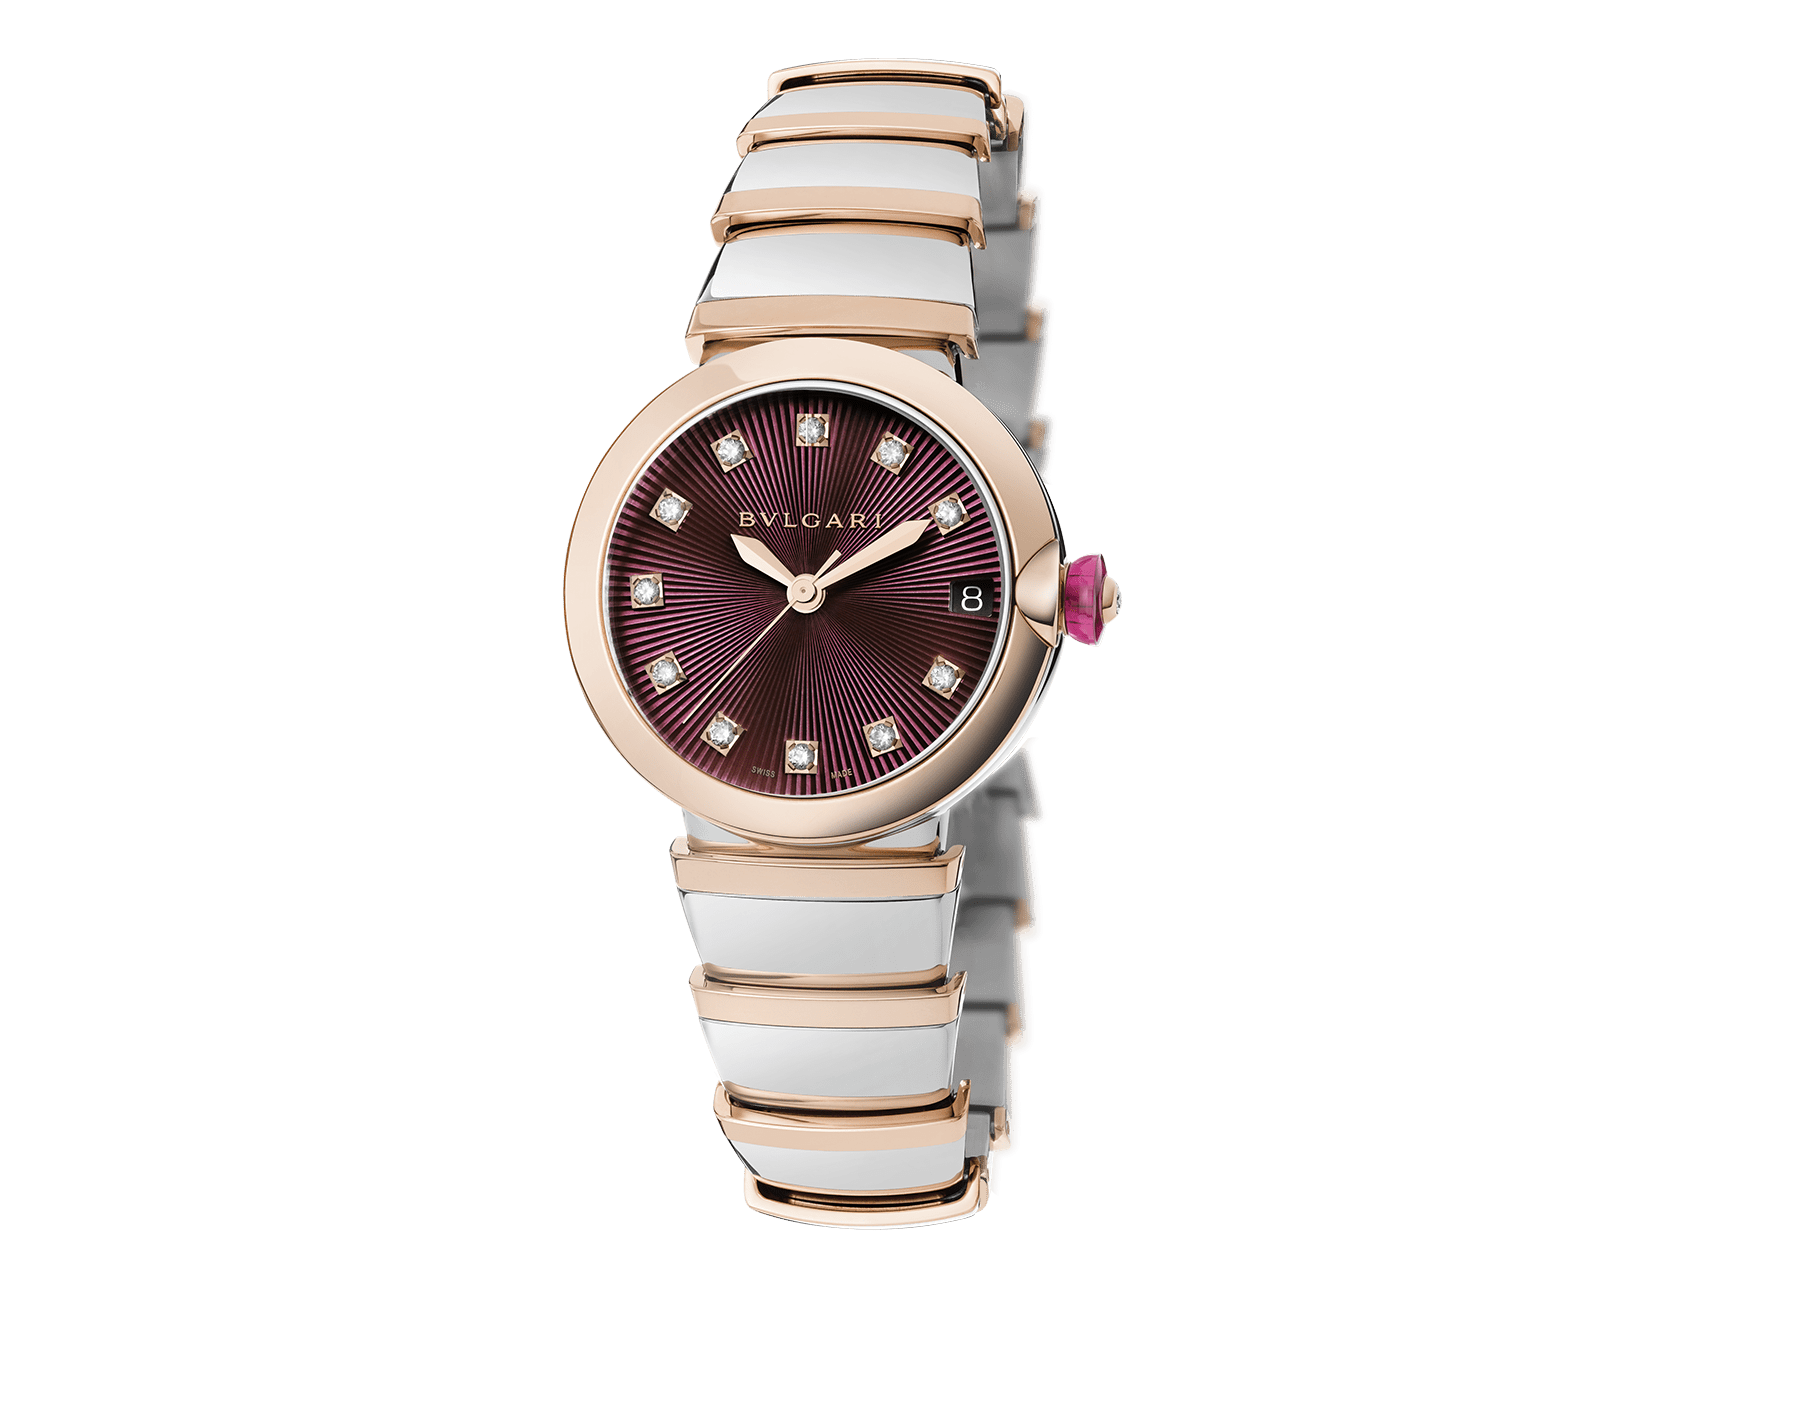 LVCEA watch in stainless steel and 18 kt rose gold case and bracelet, with violet dial and diamond indexes. 102497 image 1